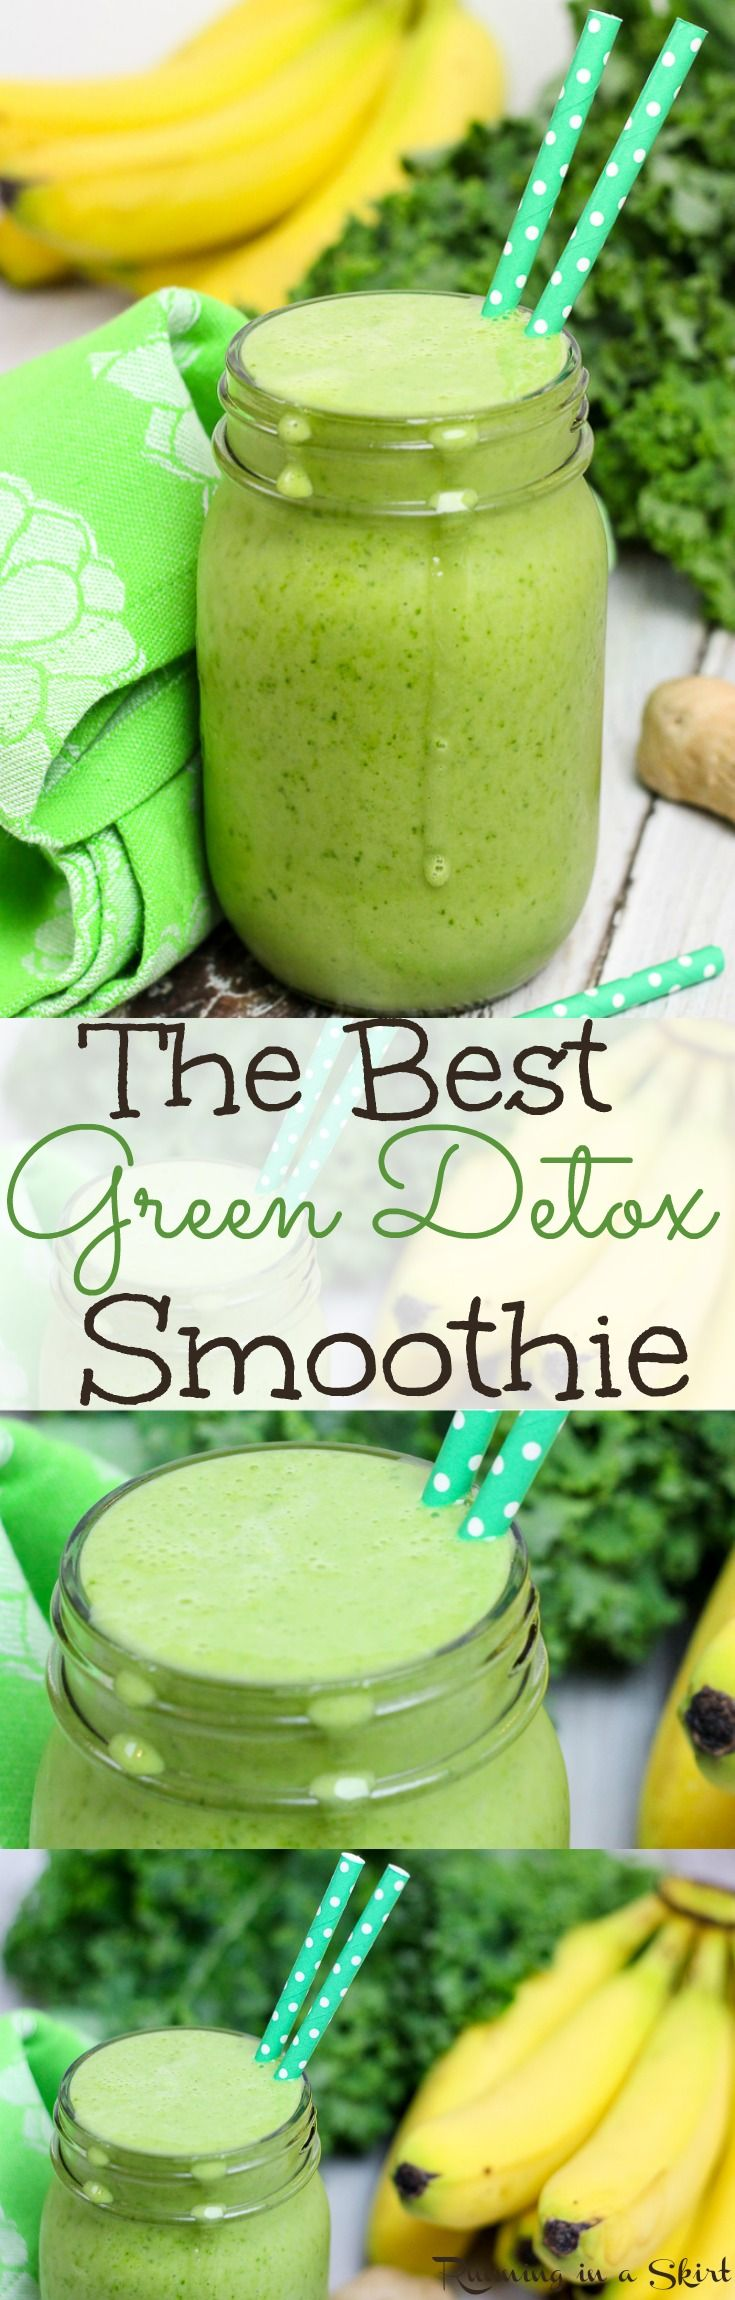 The best green smoothie recipe. Kale, Pineapple and Ginger Detox Green Smoothie.  Easy, healthy and simple! A great breakfast or way to start your mornings or health snack. Vegan and dairy free.  Great for inflamation with ginger and cinnamon!| Running in a Skirt